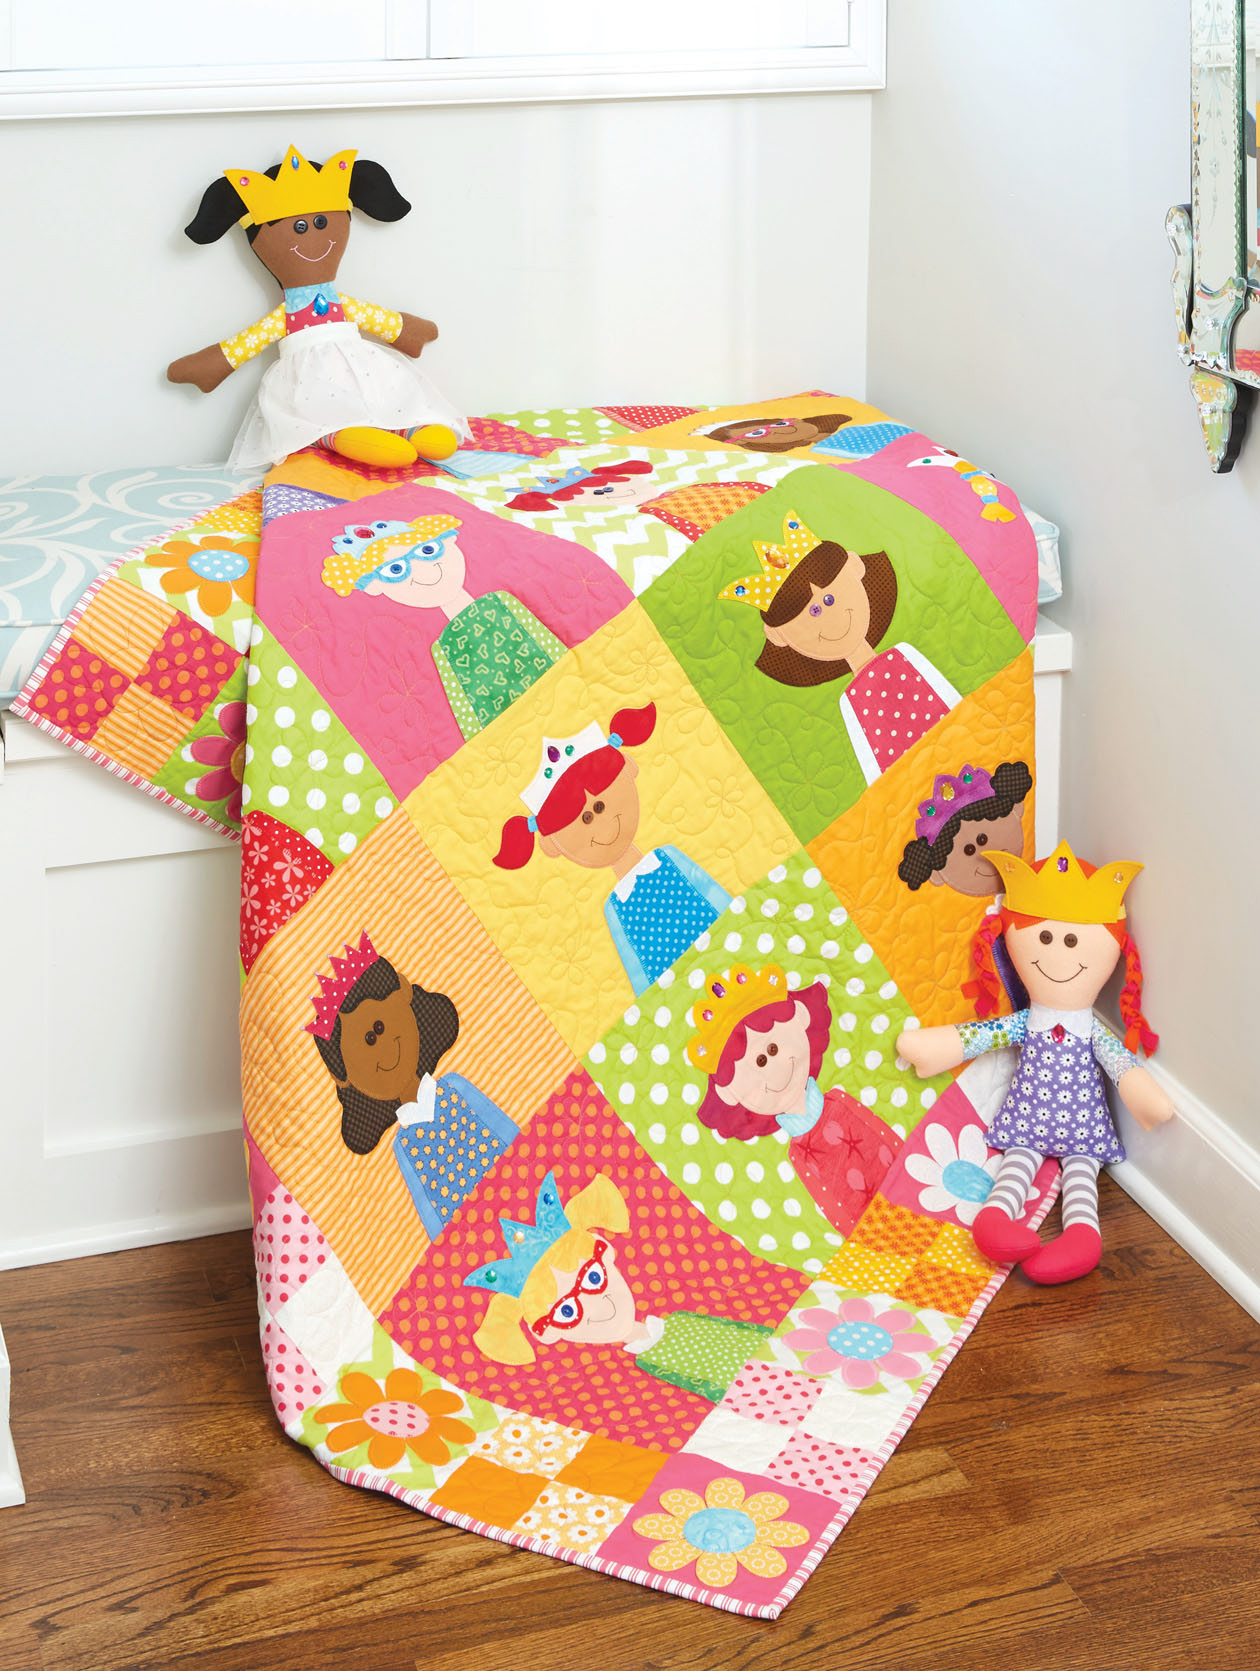 HappyQuilts pincesses 10 Happy Quilts for Kids